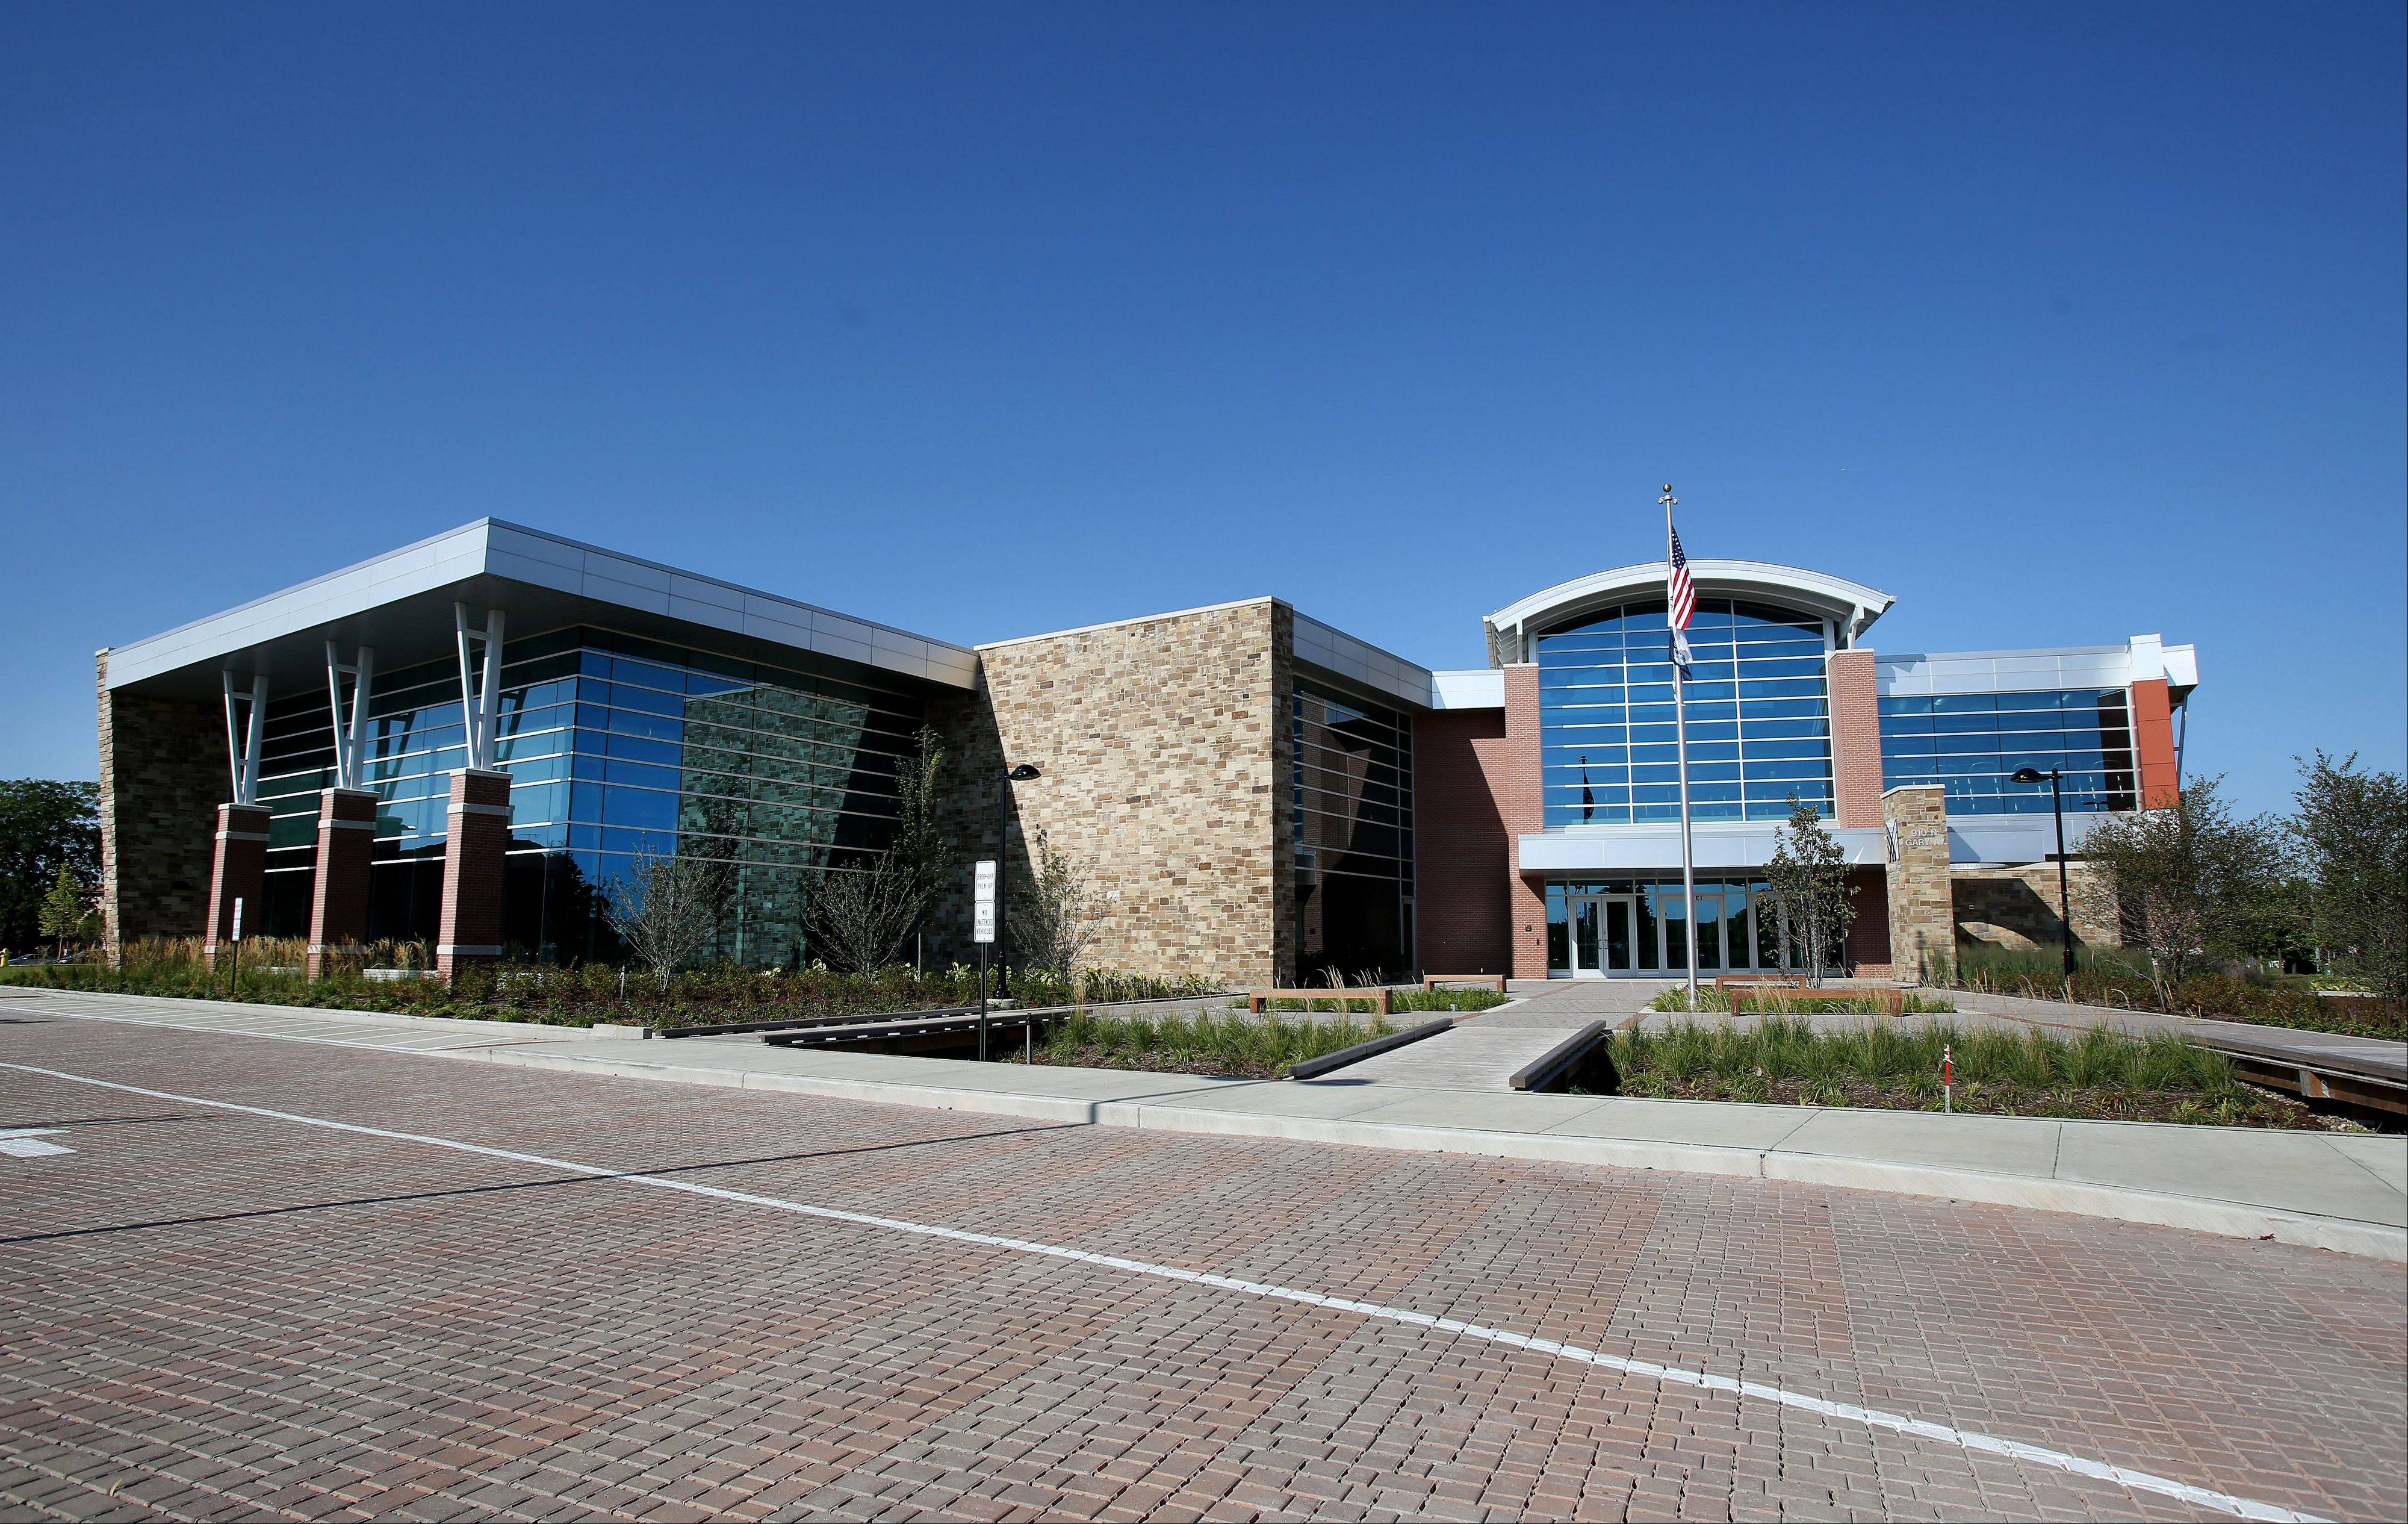 The $19 million, 90,846-square-foot Fountain View Recreation Center in Carol Stream will have its grand opening Saturday.